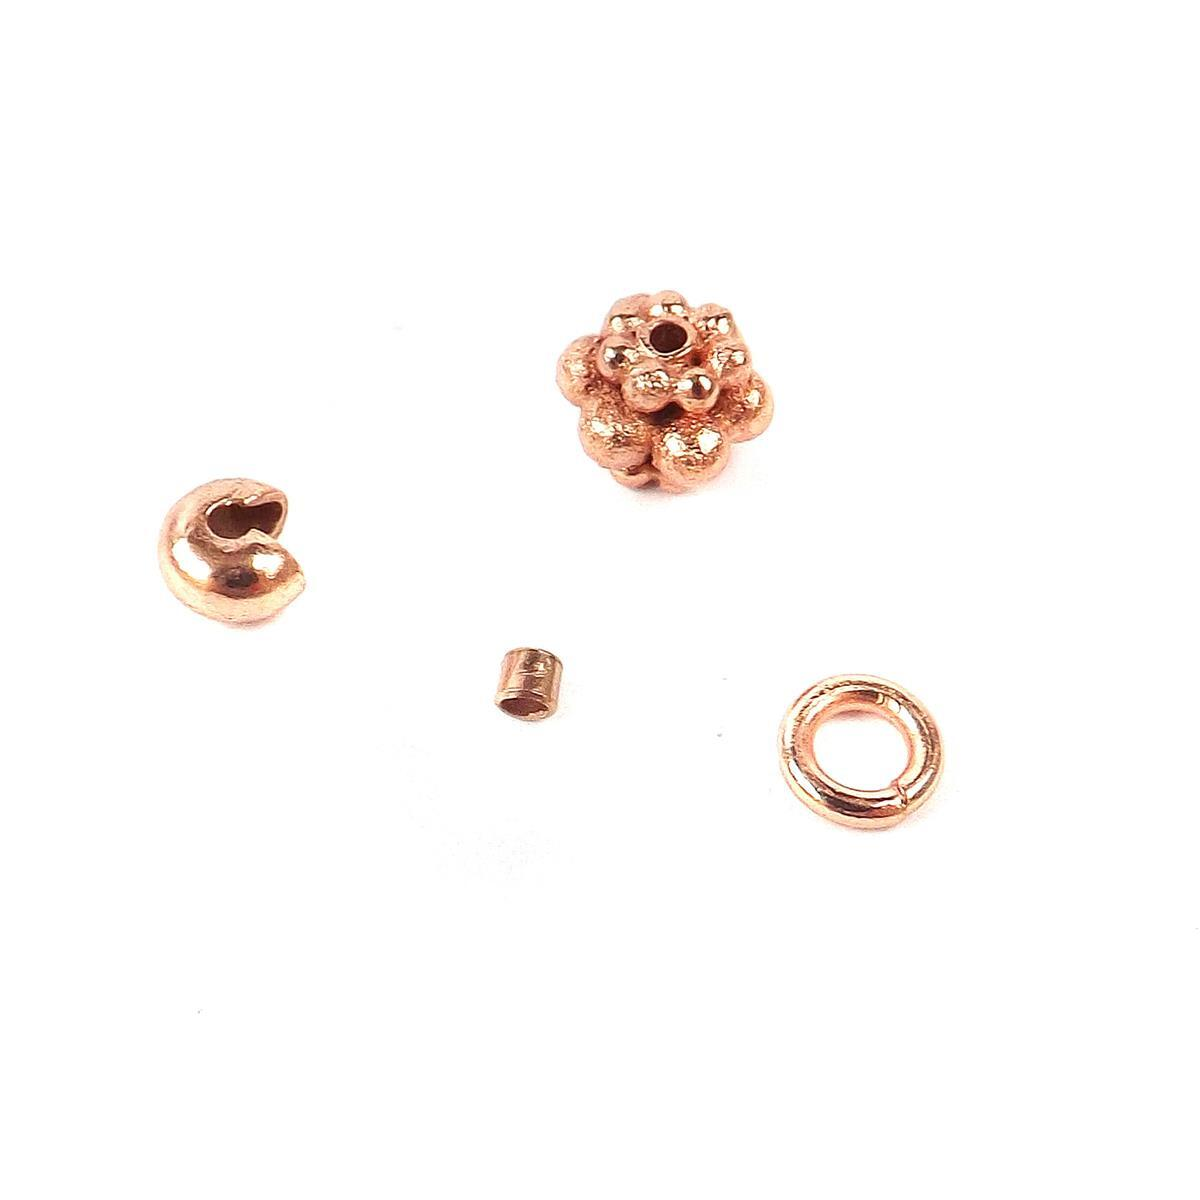 Rose Gold Copper: Rose Gold Plated Copper Essential Finding Kit Organza Bag